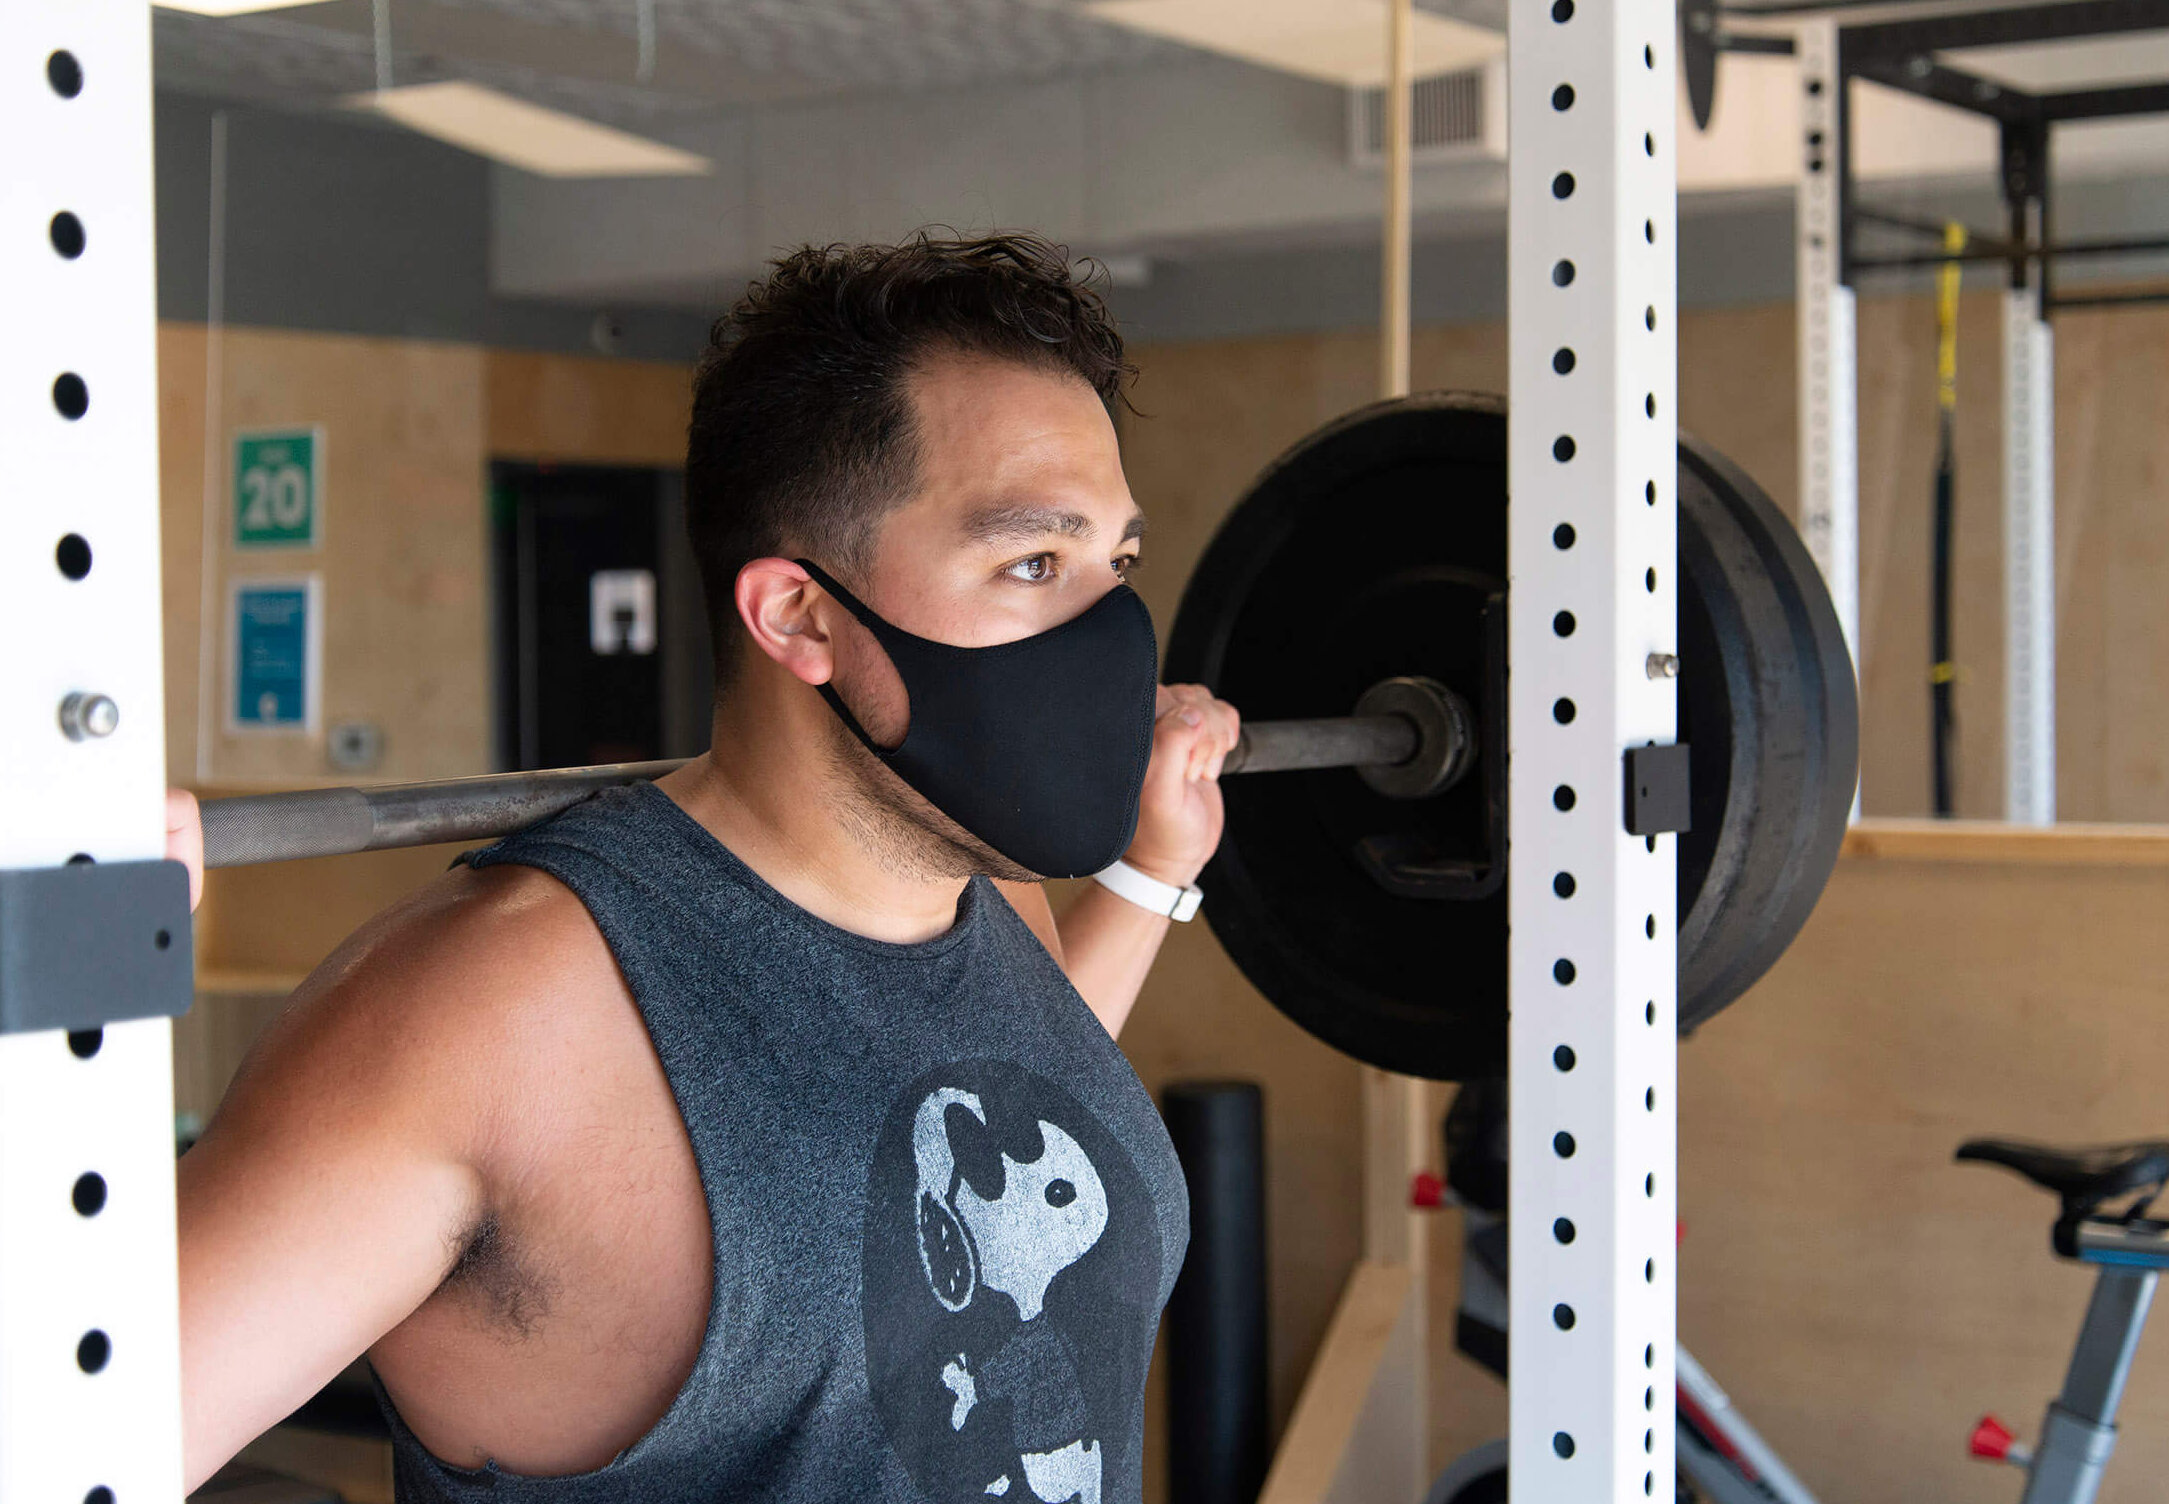 Trainer Talk: Exercising in Masks isn't So Bad!